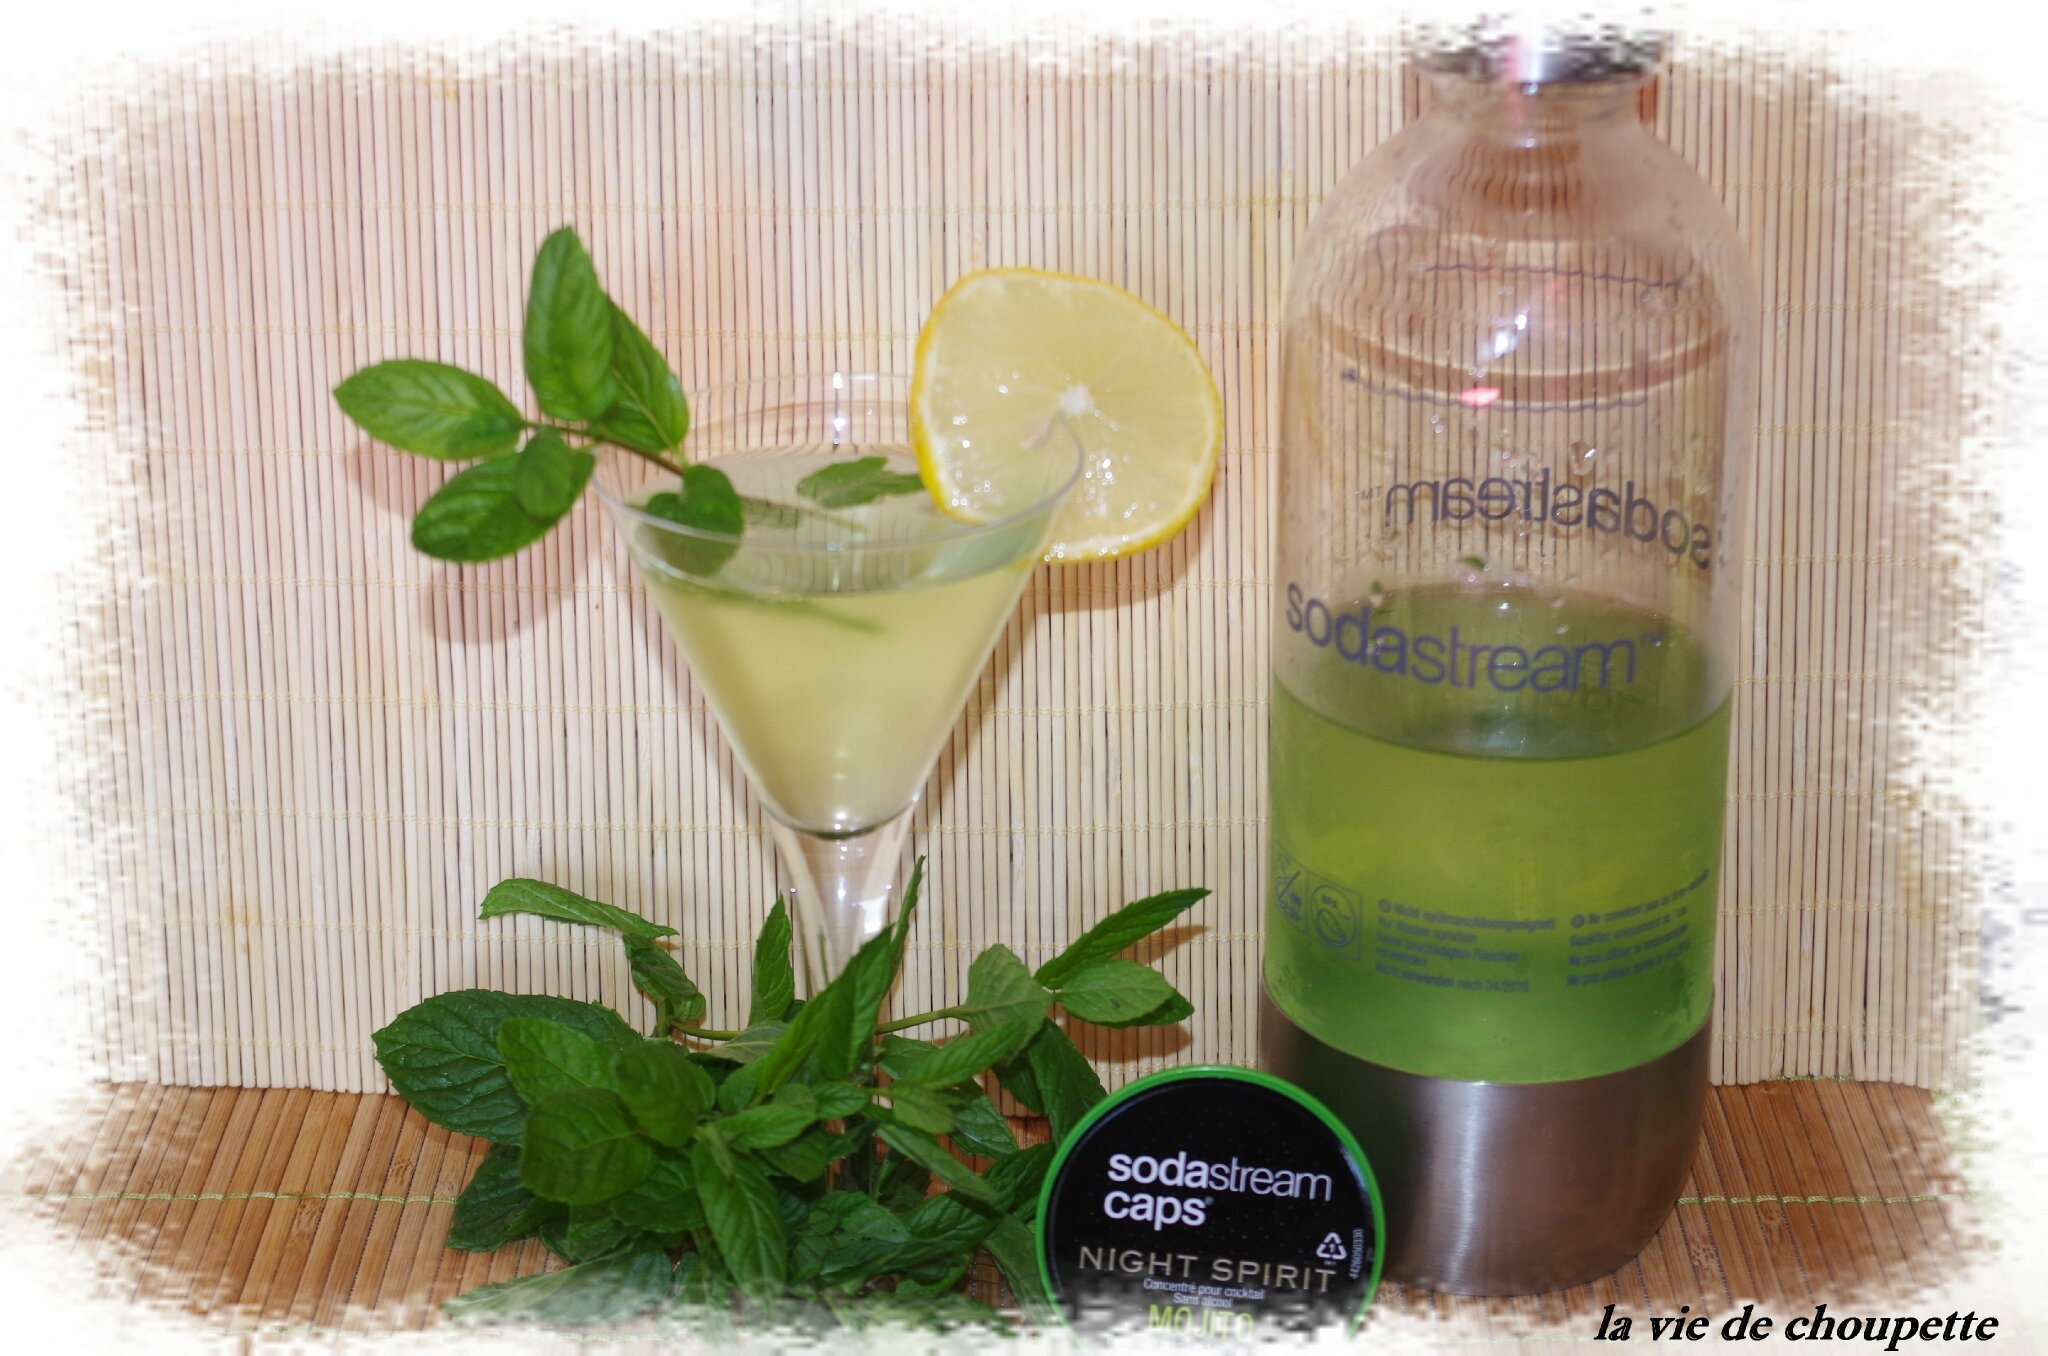 mojito sans alcool a la sodastream quand choupette et papoune cuisinent. Black Bedroom Furniture Sets. Home Design Ideas